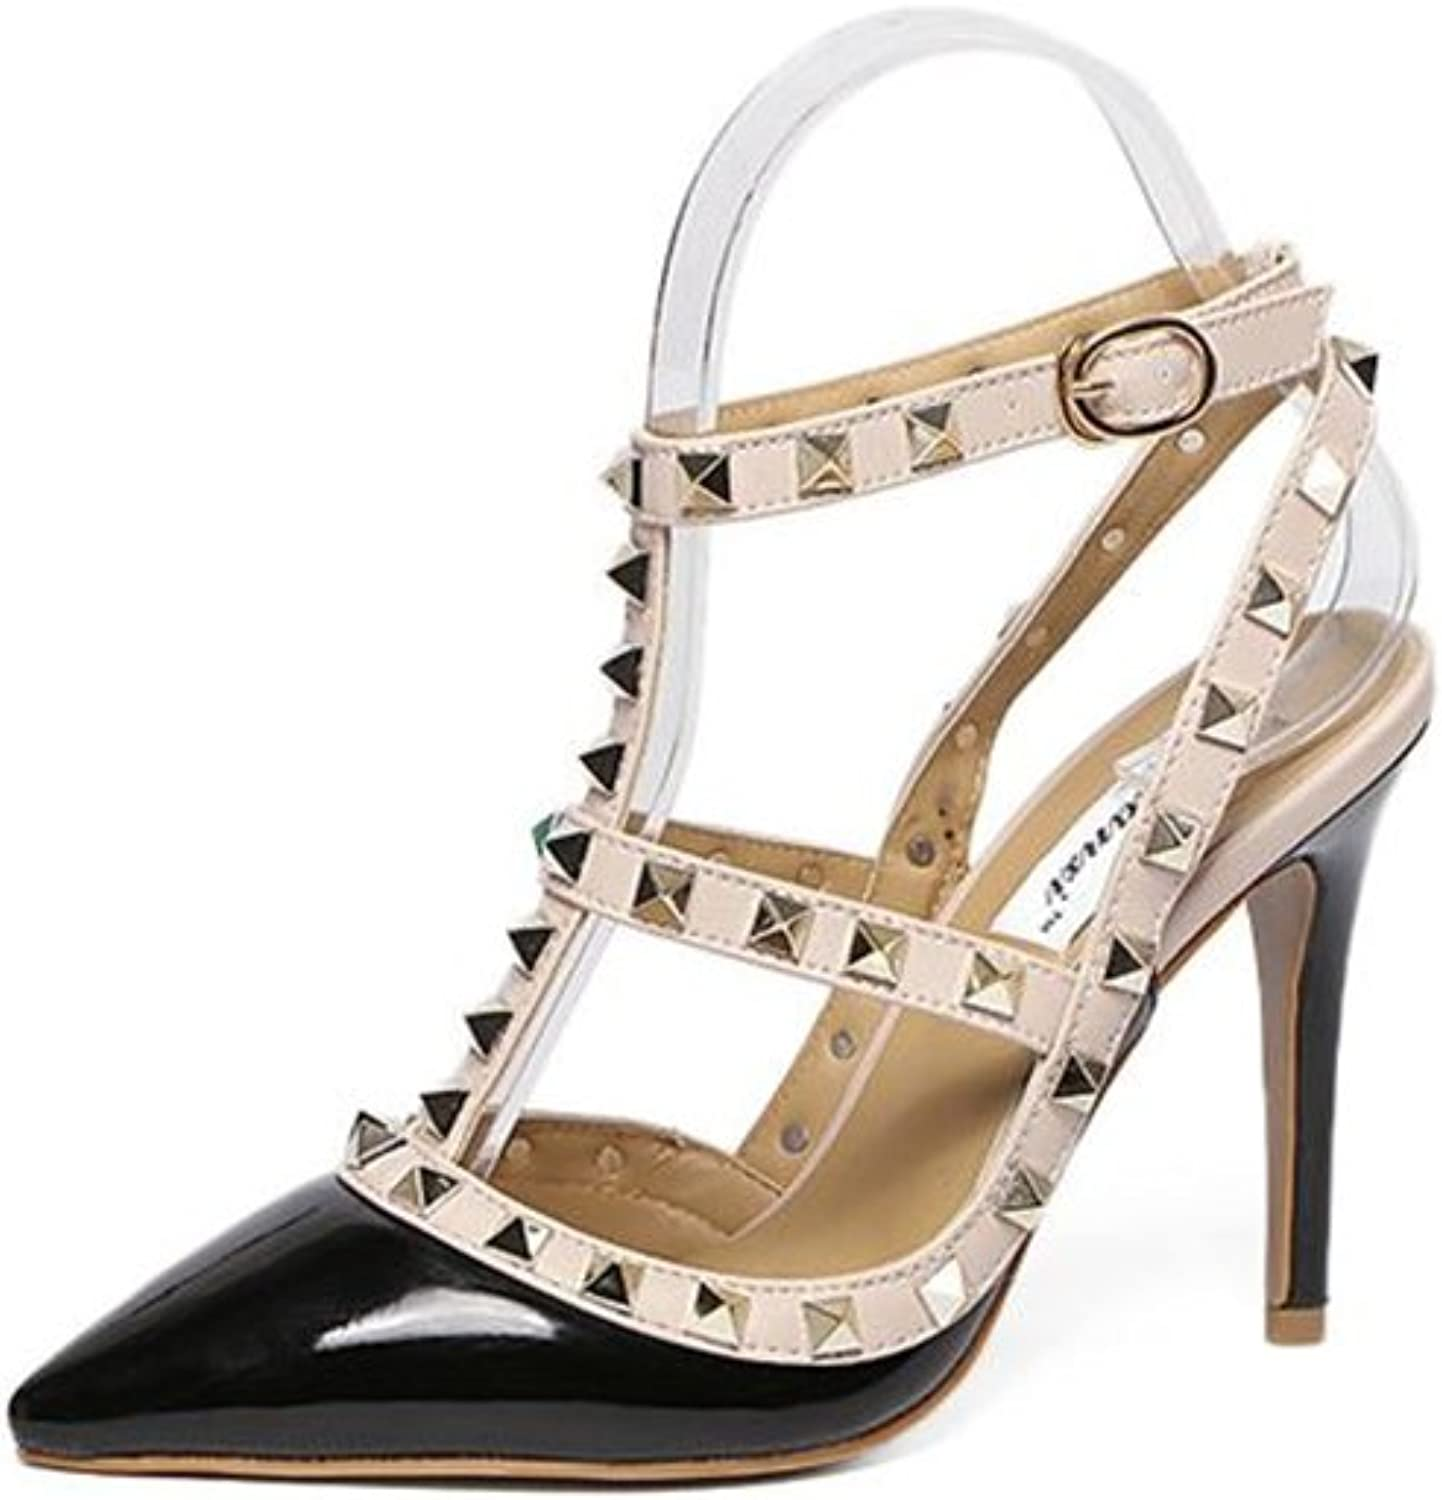 Pointed Toe Studded Strappy Slingback High Heel Leather Pumps Stilettos Sandals